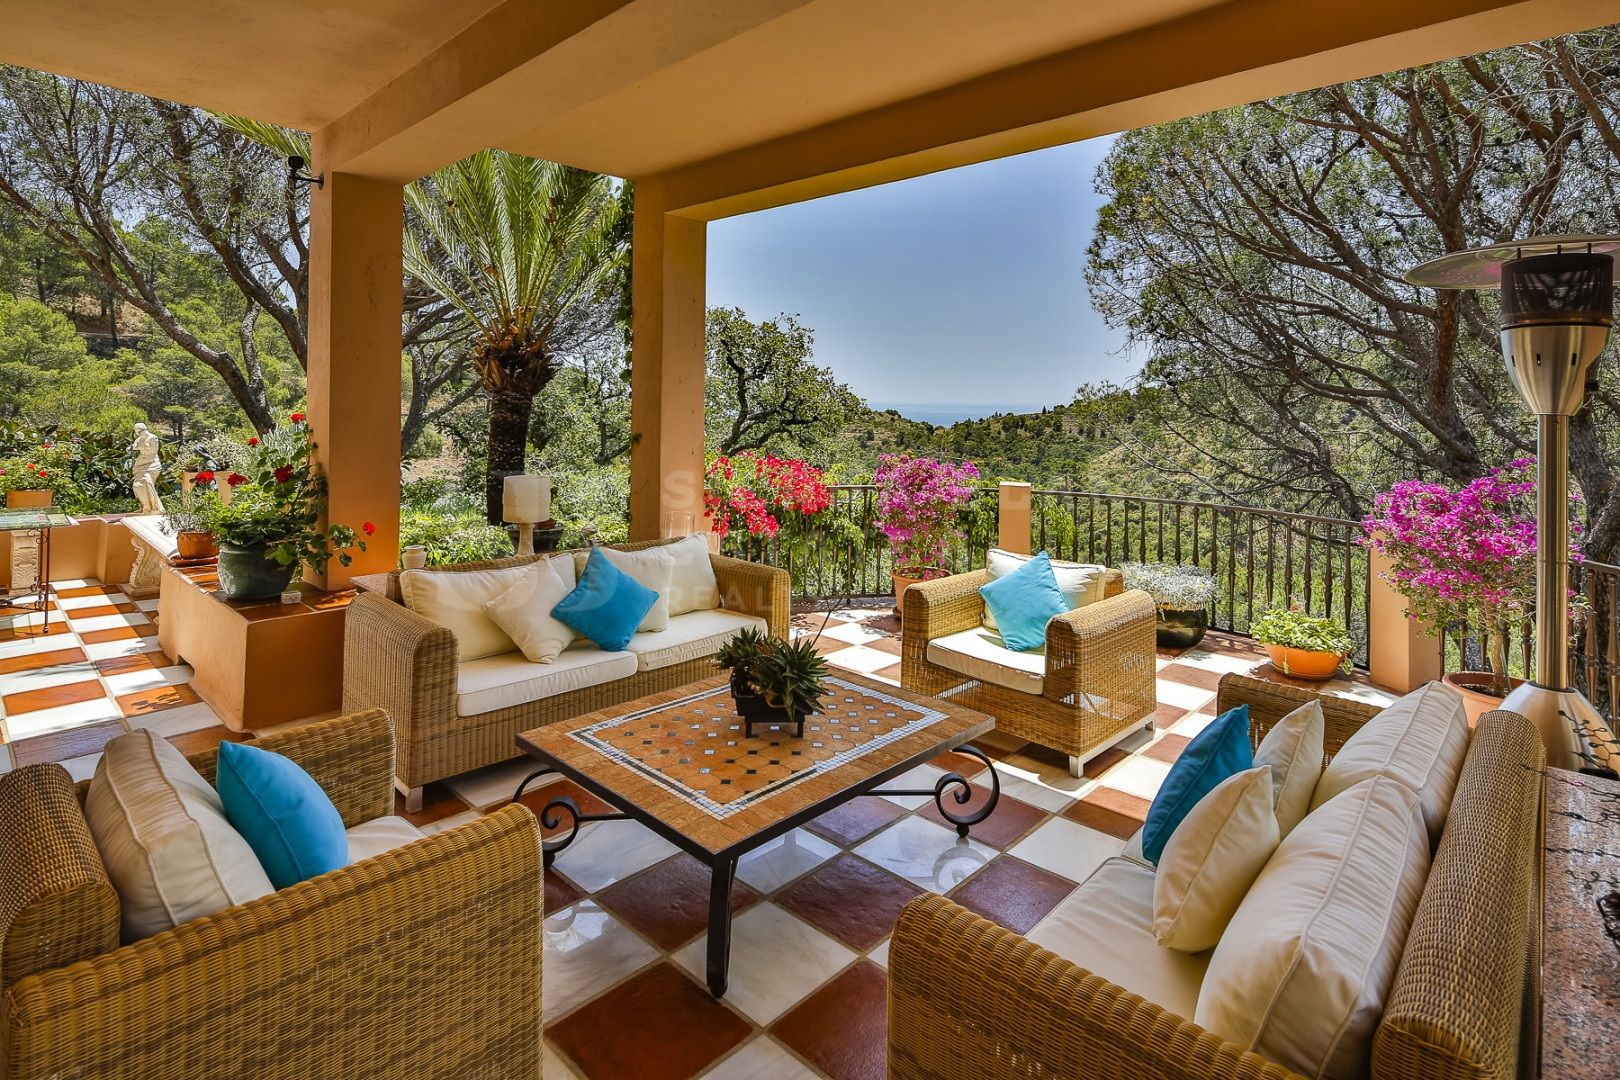 Magnificent villa surrounded by nature in El Madroñal